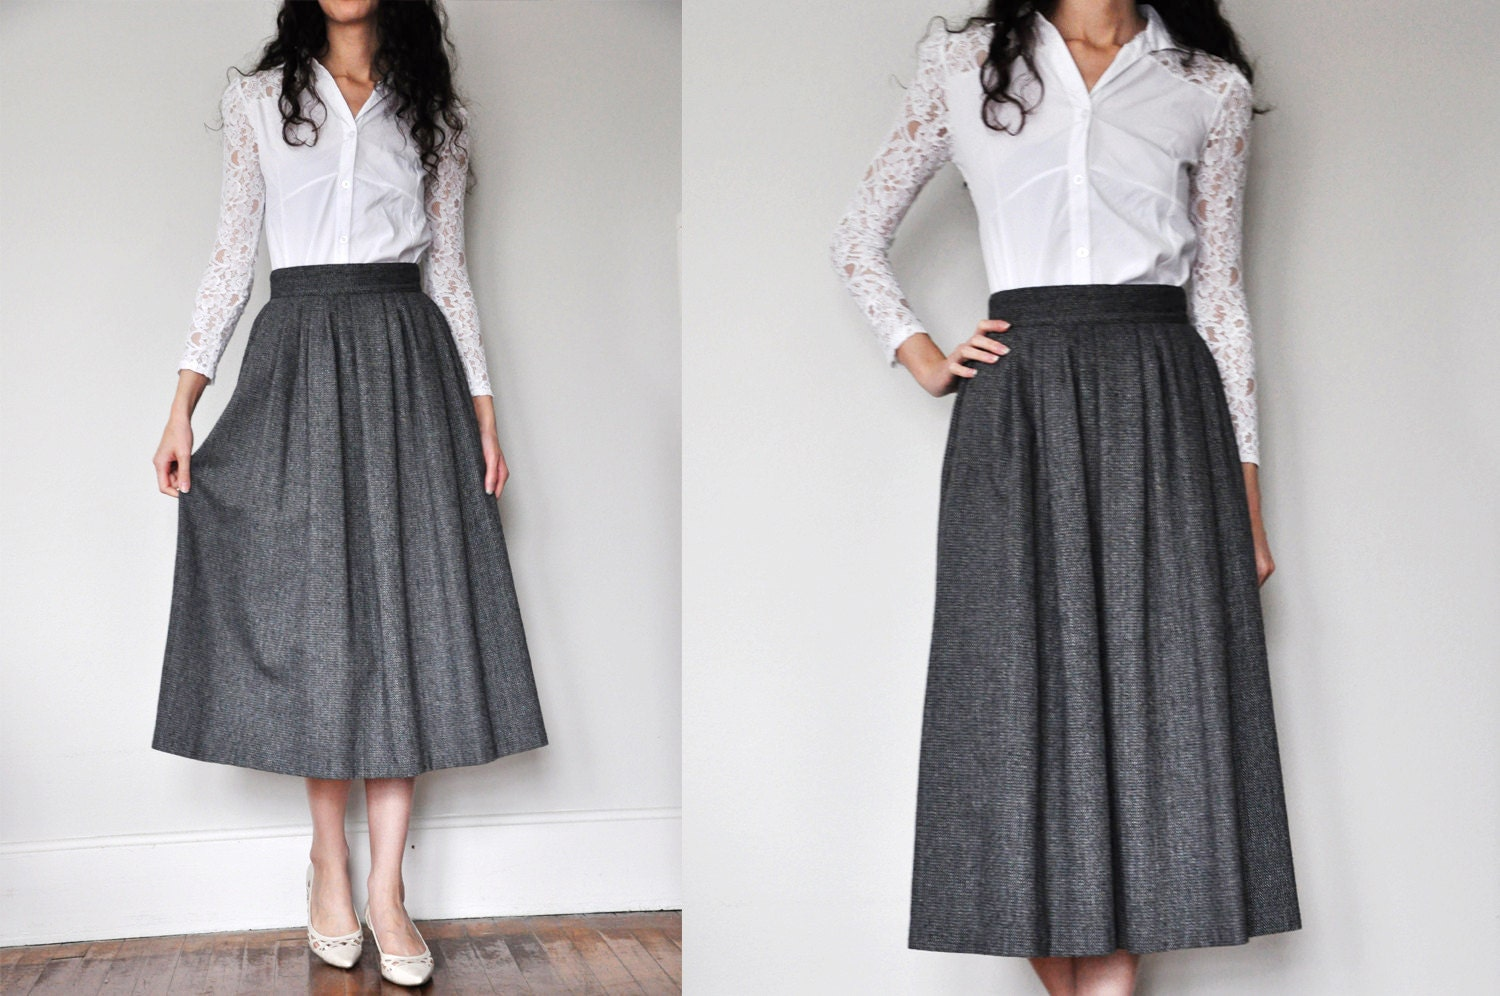 Vintage Herringbone Wool Skirt Long Black Grey White / size